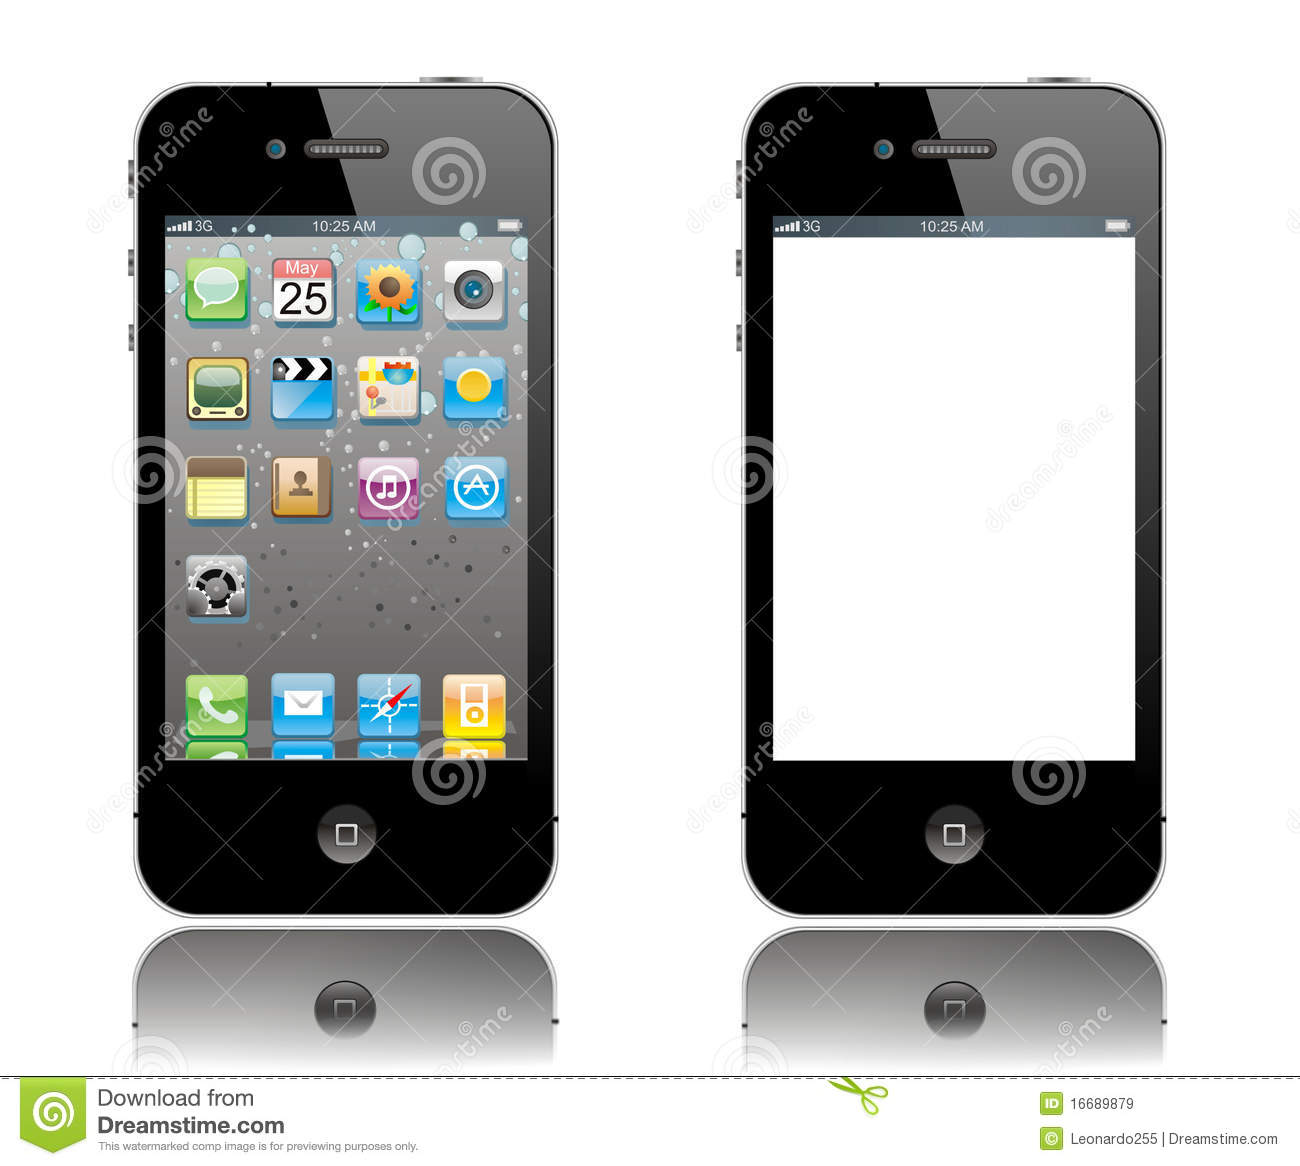 portable network graphics image iphone iphone editorial stock image image of glossy equipment 6126